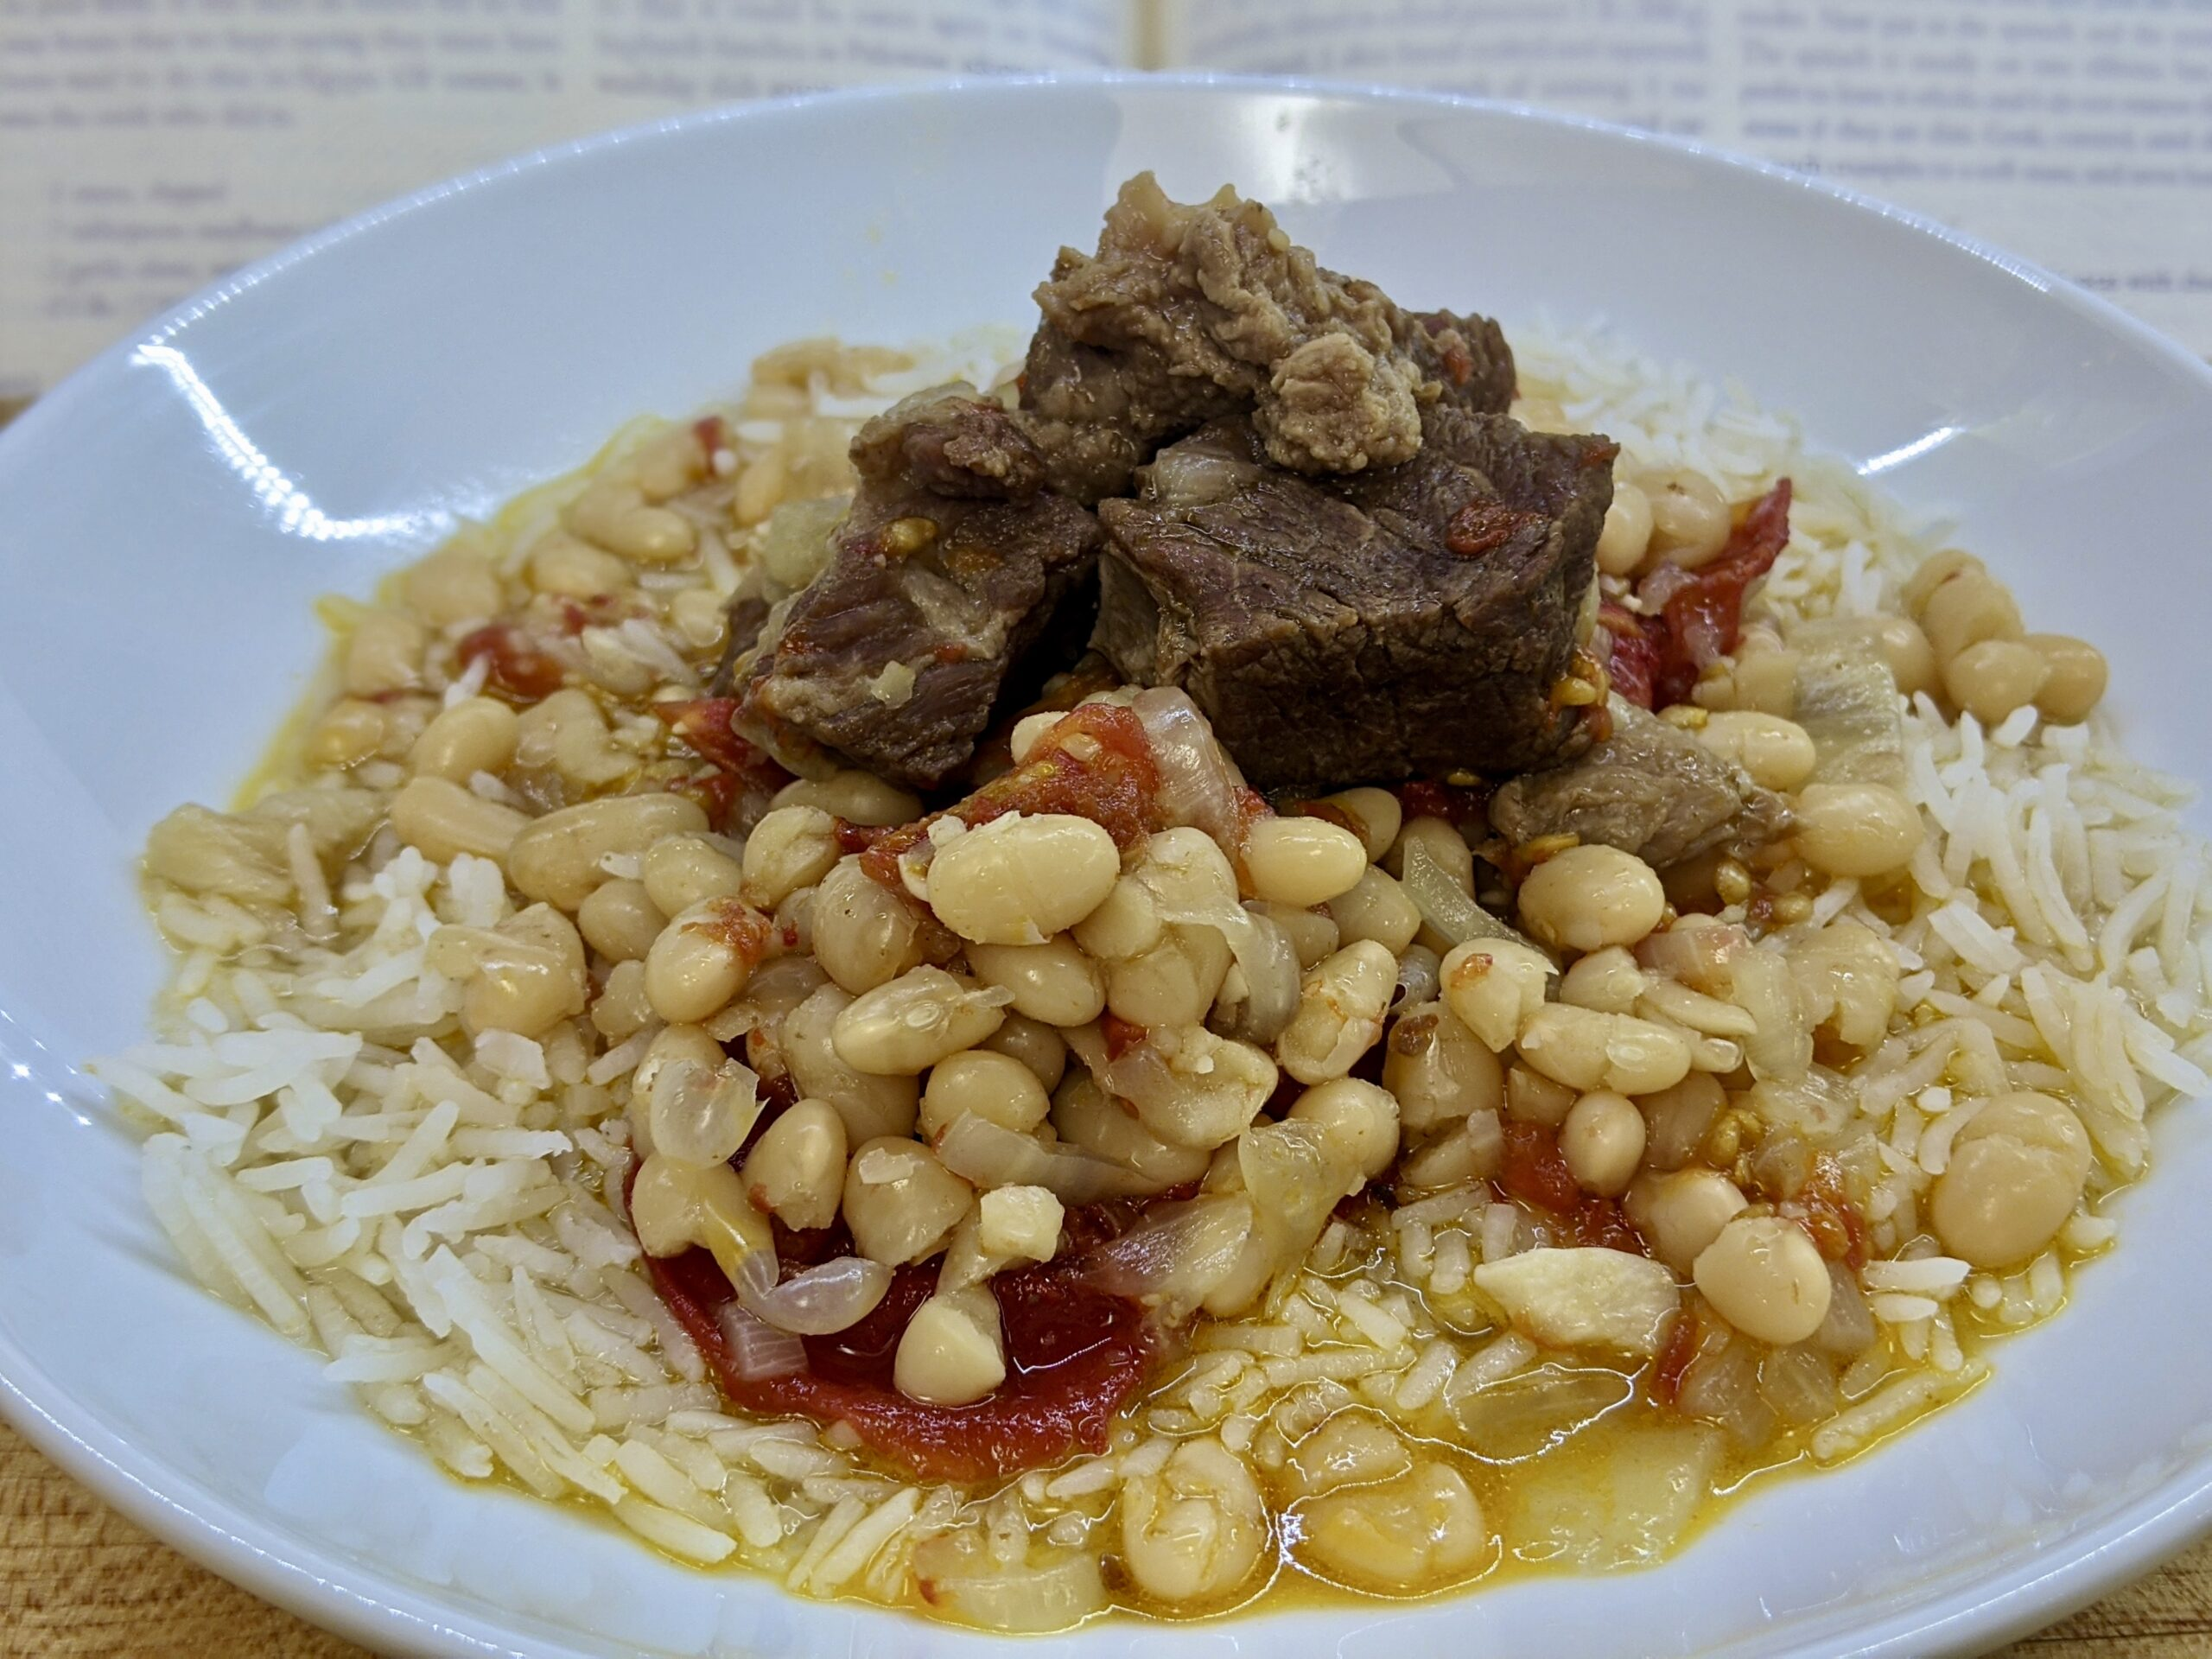 Made In Marrow - Meal 93 - Avas - Haricot Bean Stew